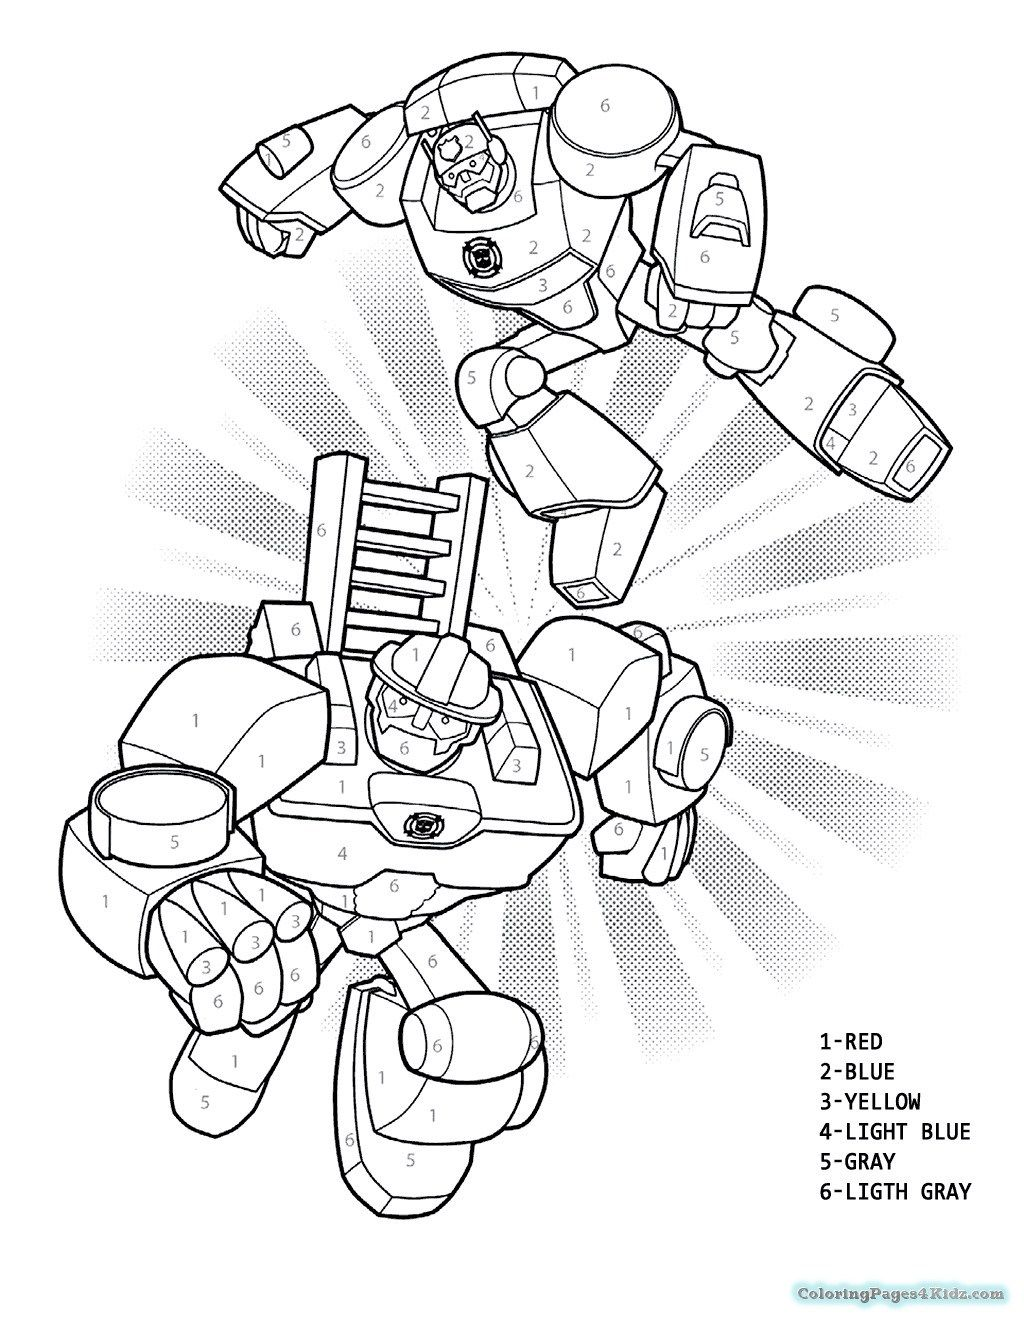 Rescue Bots Coloring Pages Rescue Bots Bumblebee Coloring Pages Chase Free Printable Coloring Transformers Coloring Pages Transformers Rescue Bots Rescue Bots